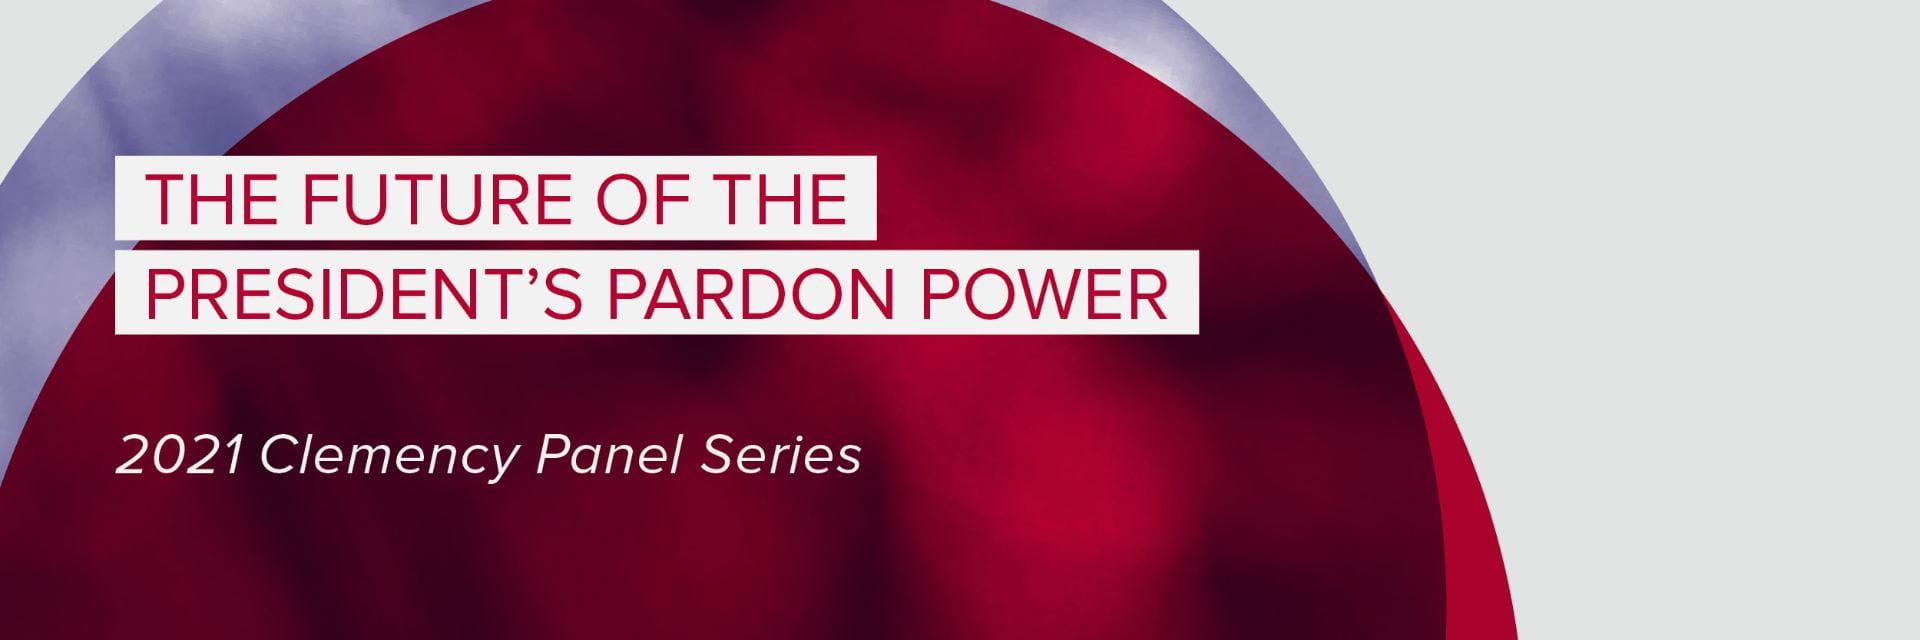 A blue textured circle overlaps a red circle with white and red text overlay that reads The Future of the President's Pardon Power, 2021 Clemency Panel Series